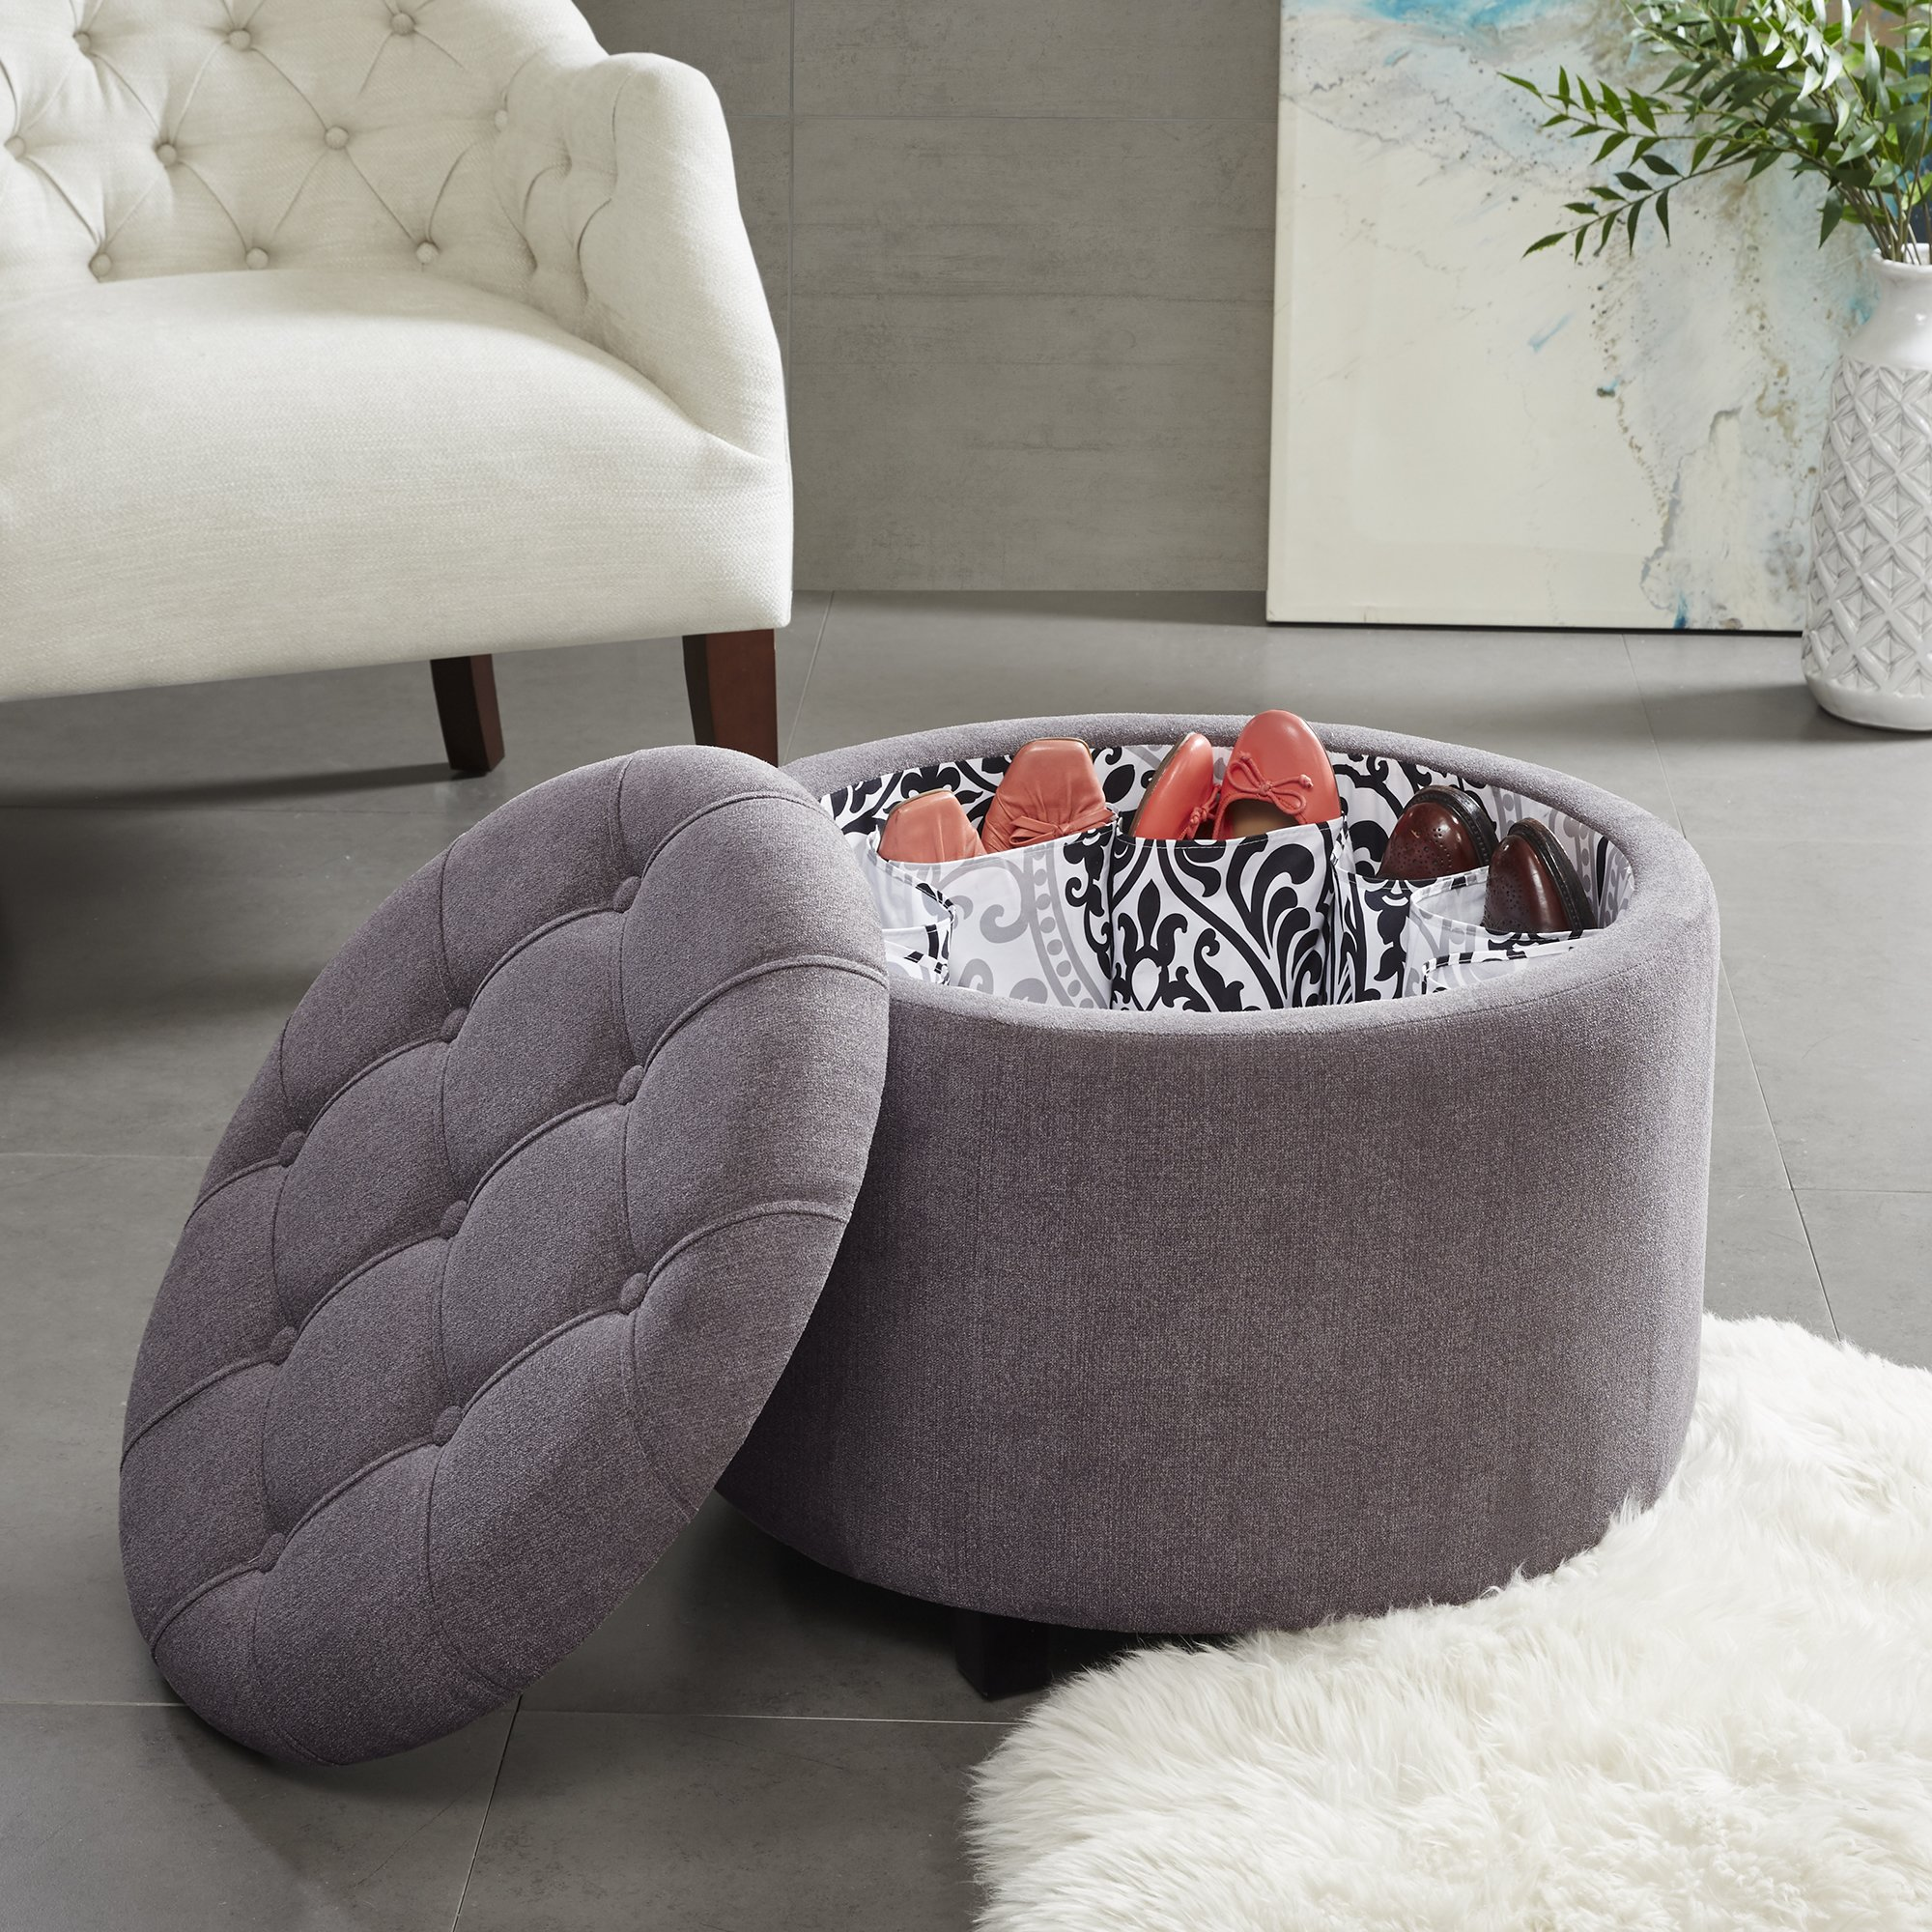 upholstered ottoman coffee table blue storage ottoman animal print ottoman large round ottoman animal print ottoman grey round ottoman ottoman poufs round upholstered ottoman large ottomans